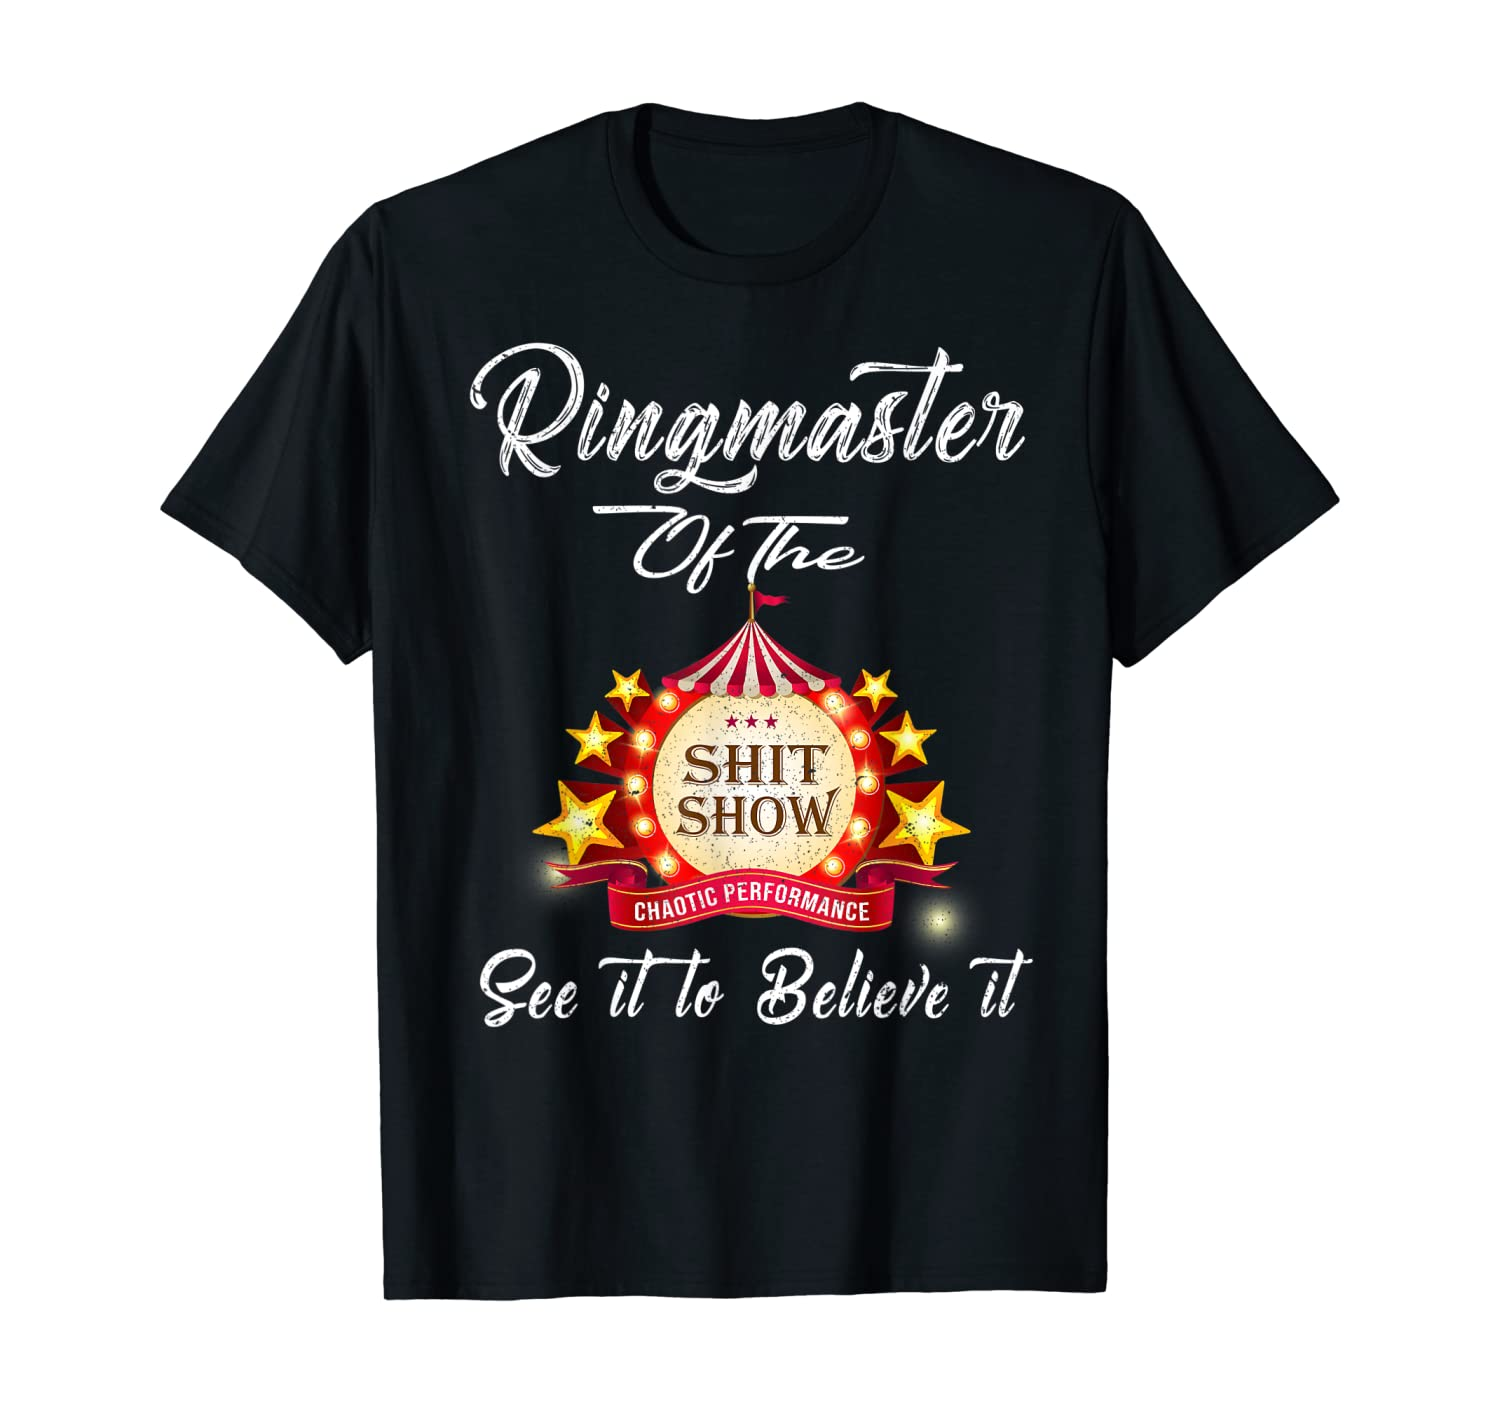 Ringmaster Of The Shitshow Funny Gift For Her / Him Cotton T-Shirt